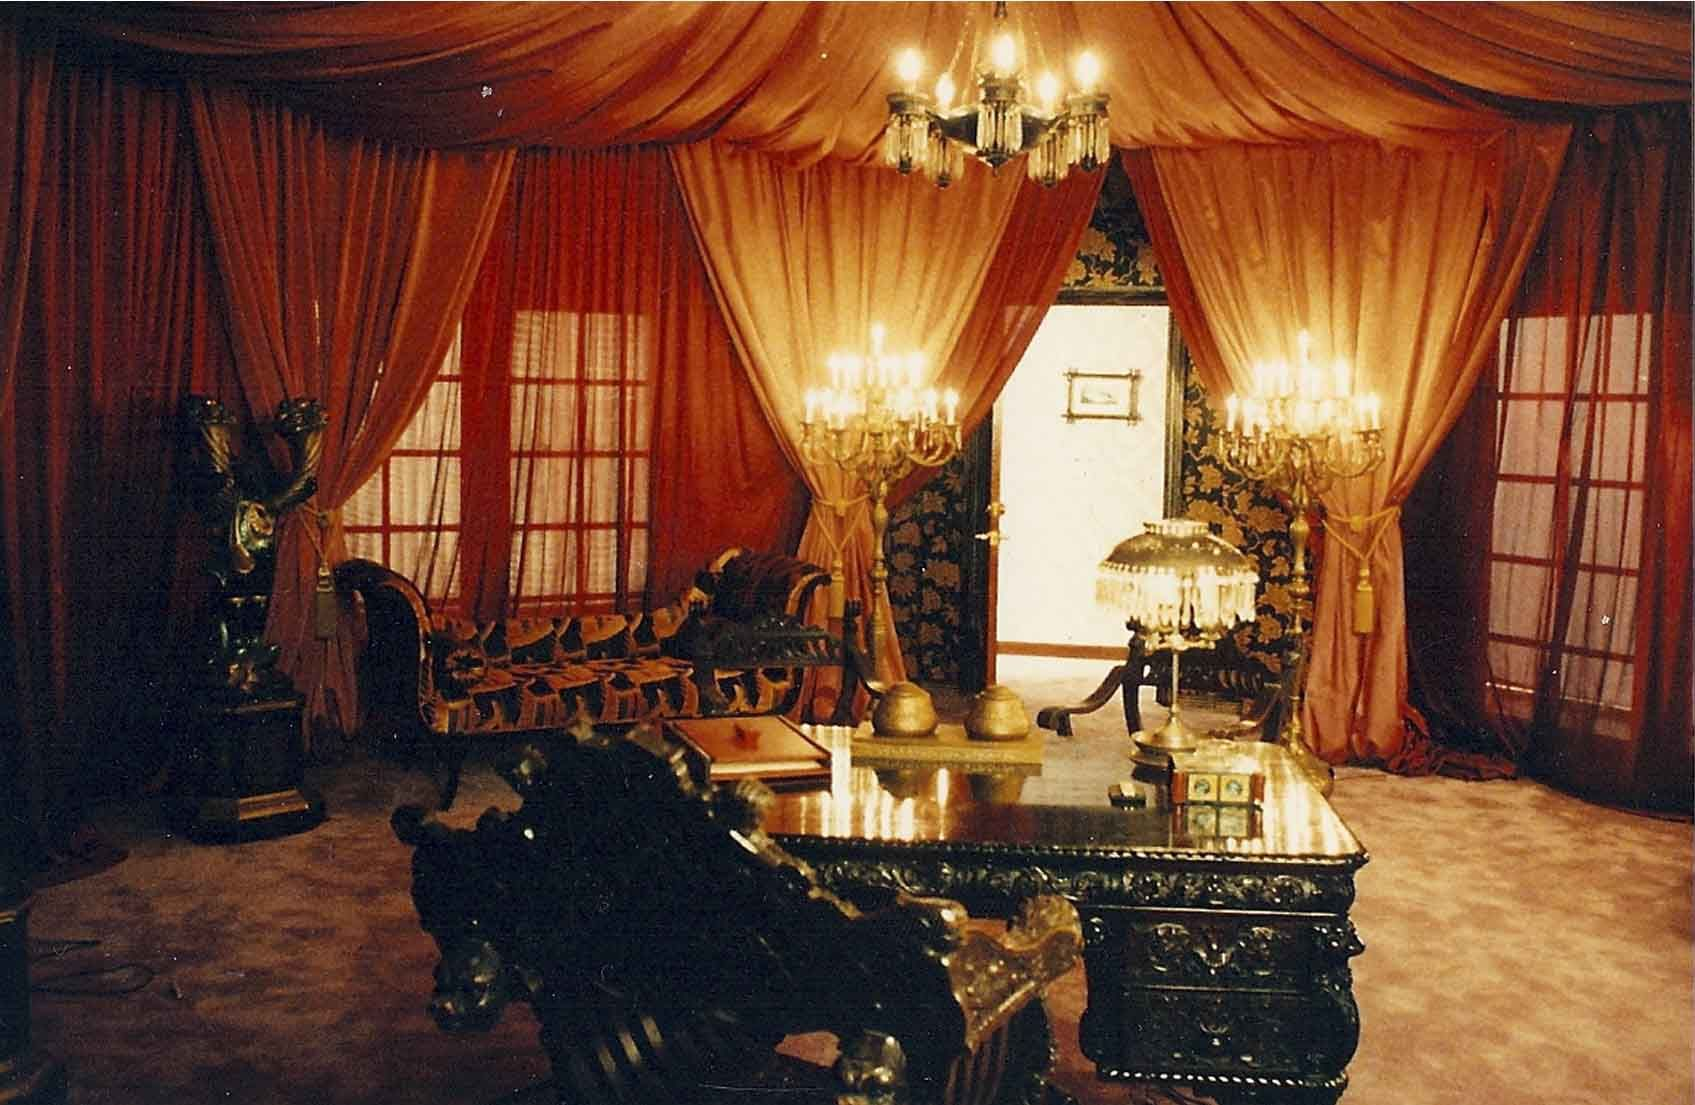 One Eyed Jacks - Twin Peaks production set by Richard Hoover